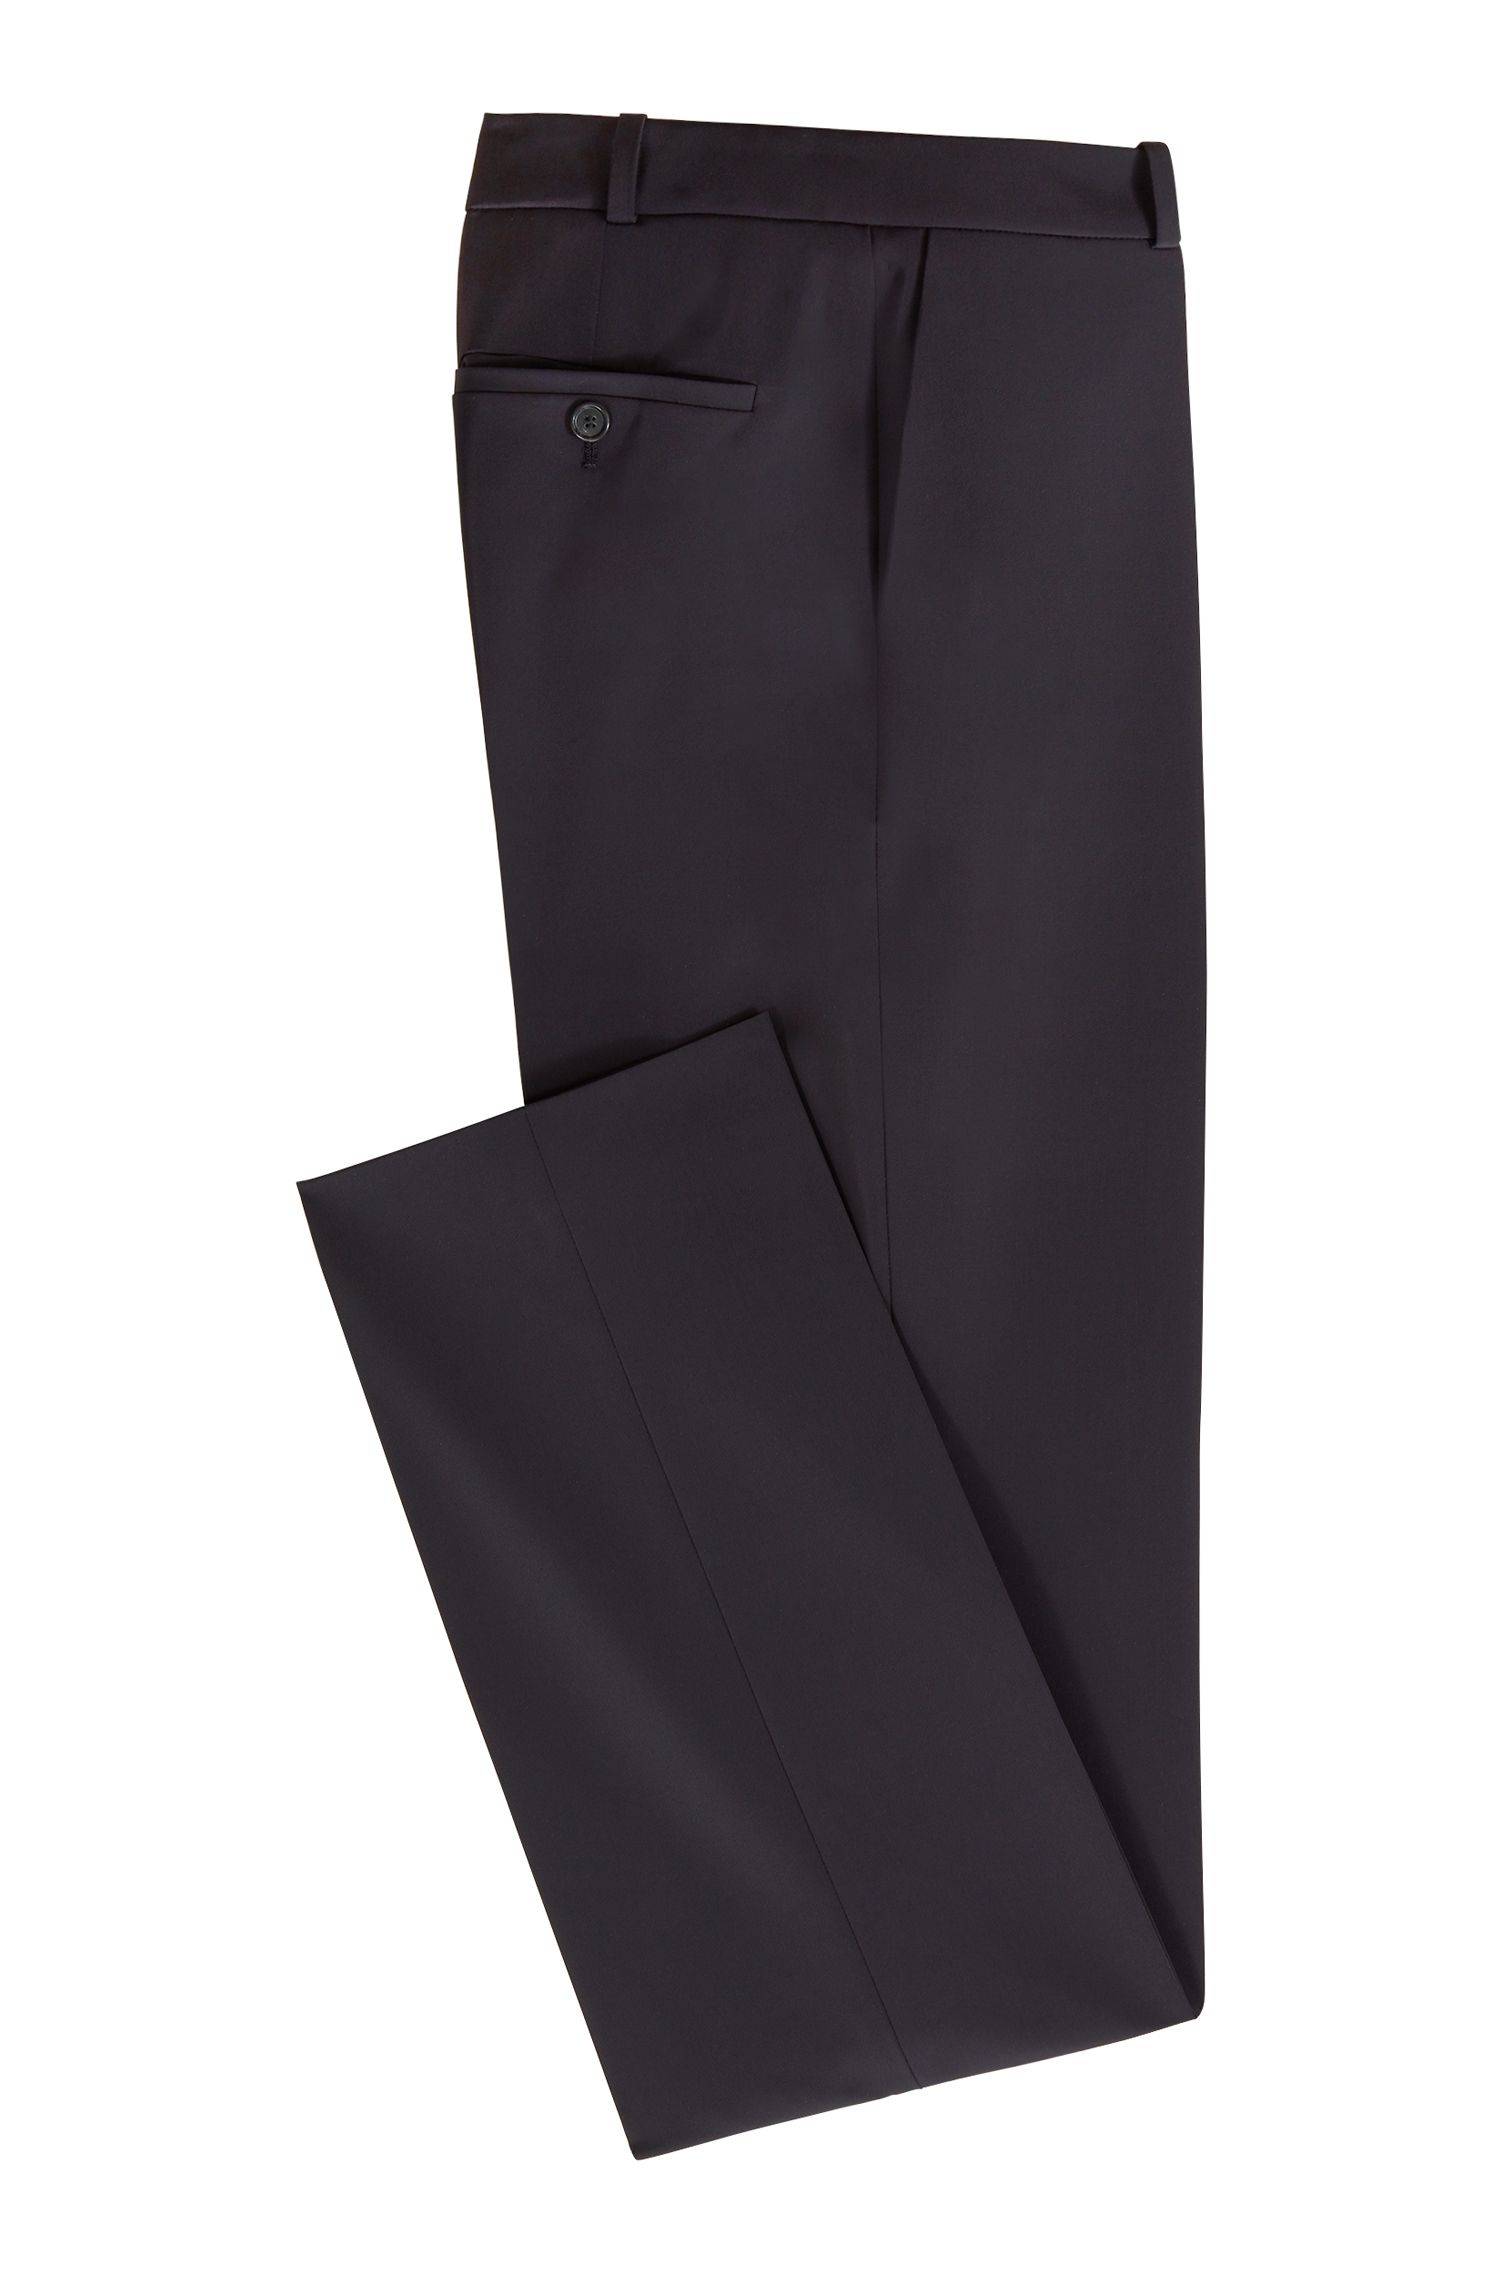 Pantalon Relaxed Fit en twill stretch italien, issu de la collection Fashion Show, Bleu foncé